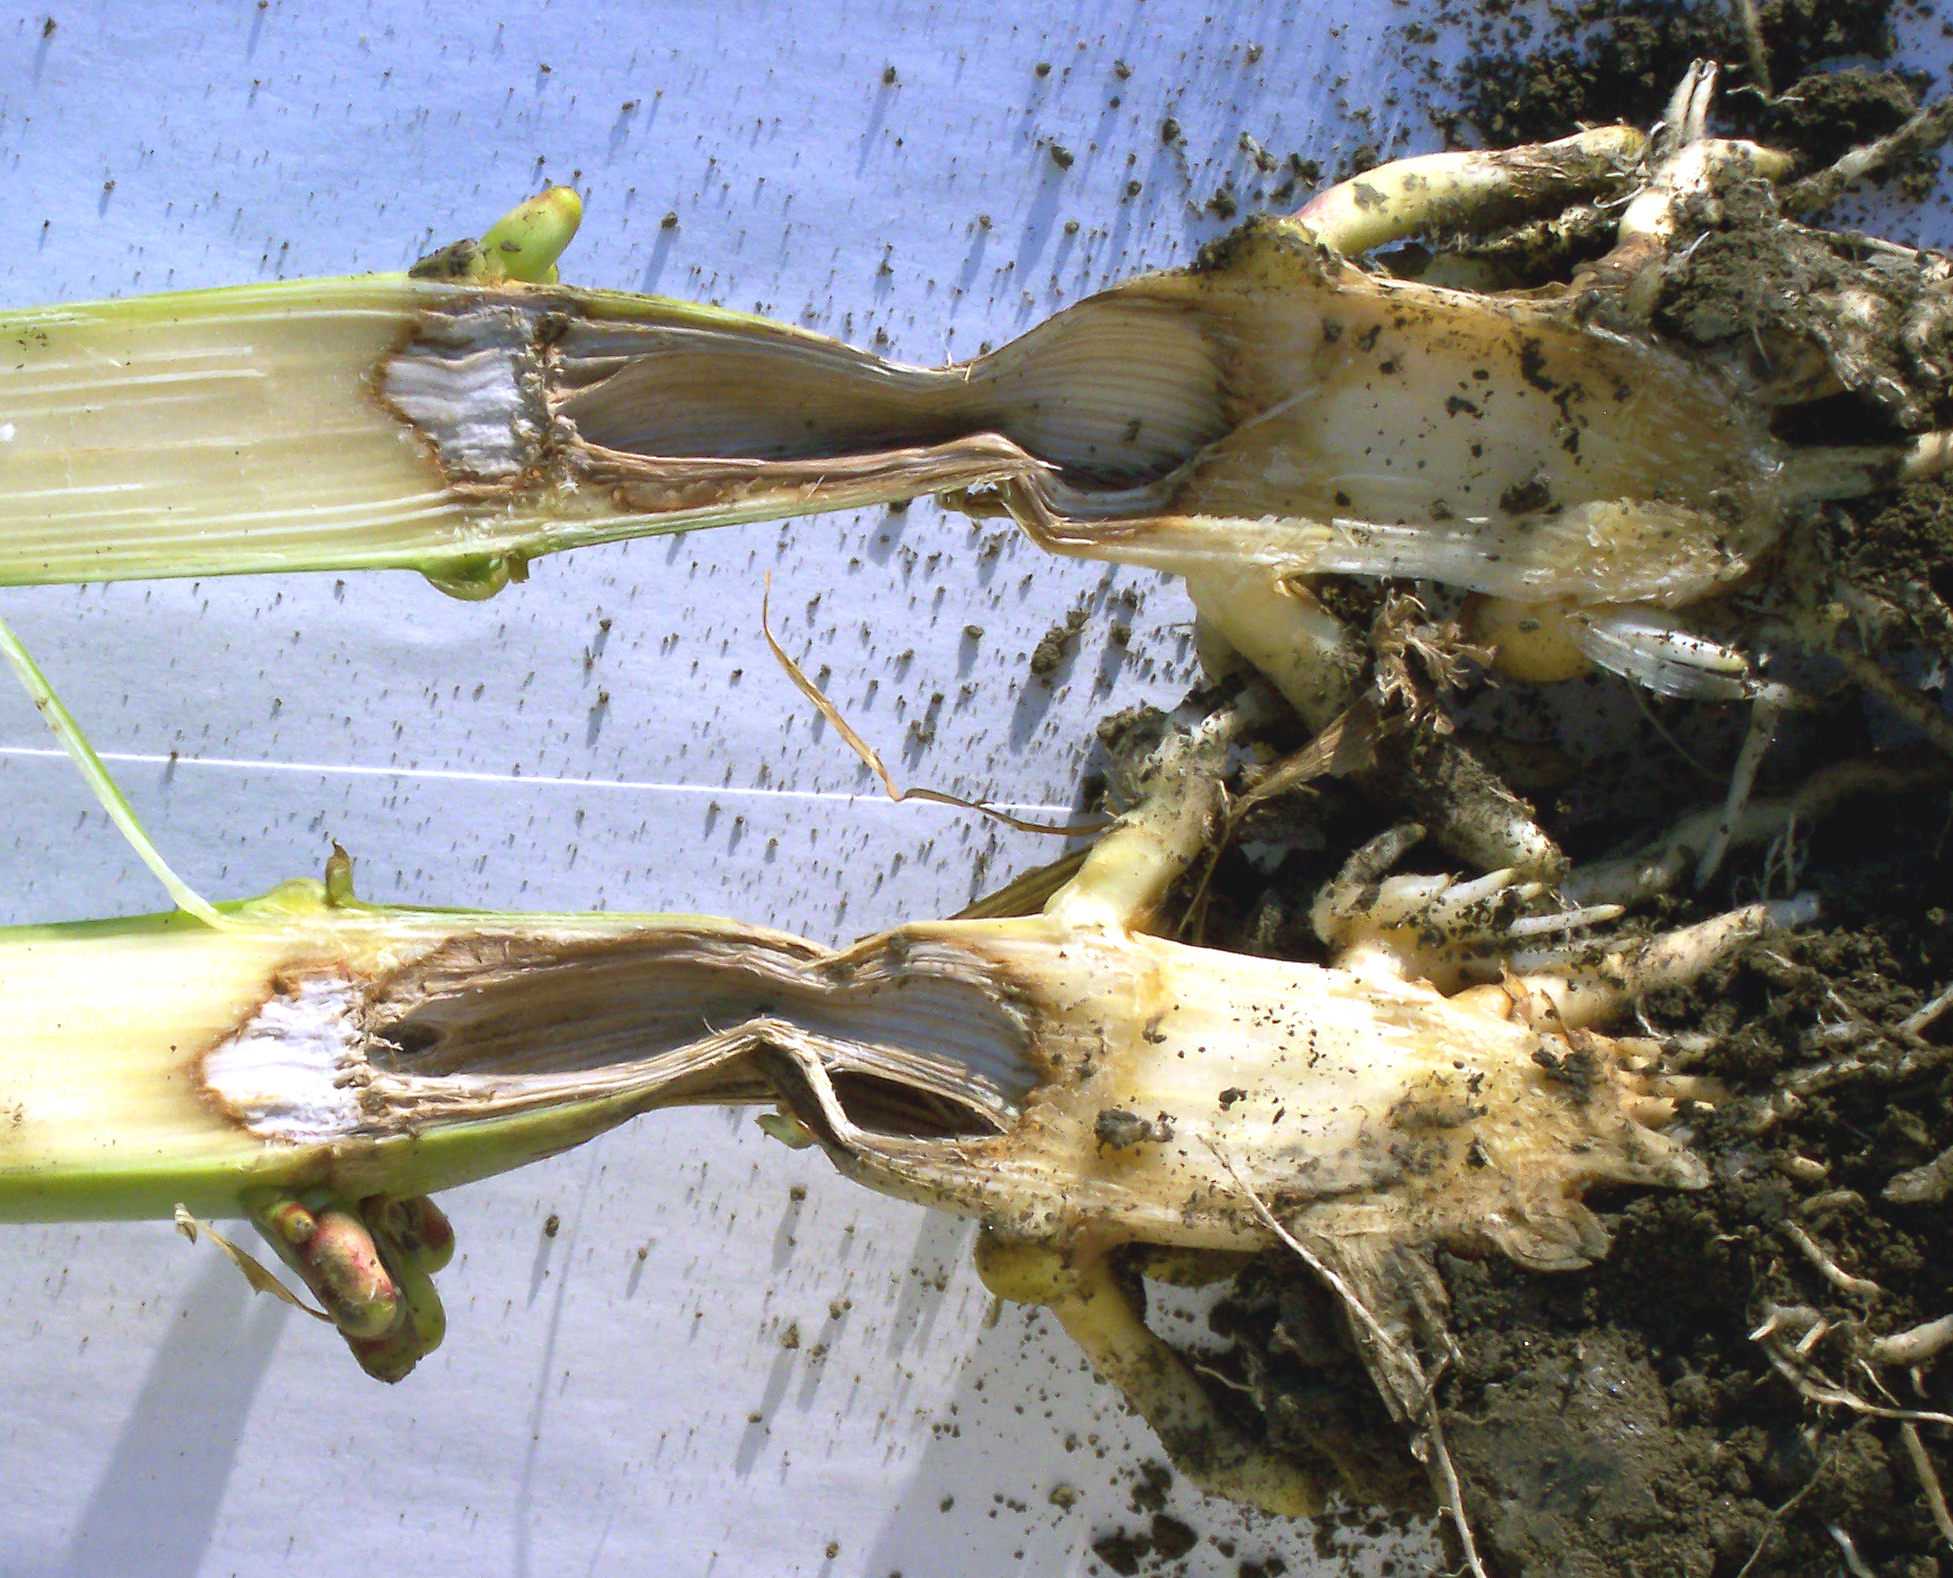 Pythium stalk rot causes decay of the first internode above the soil.